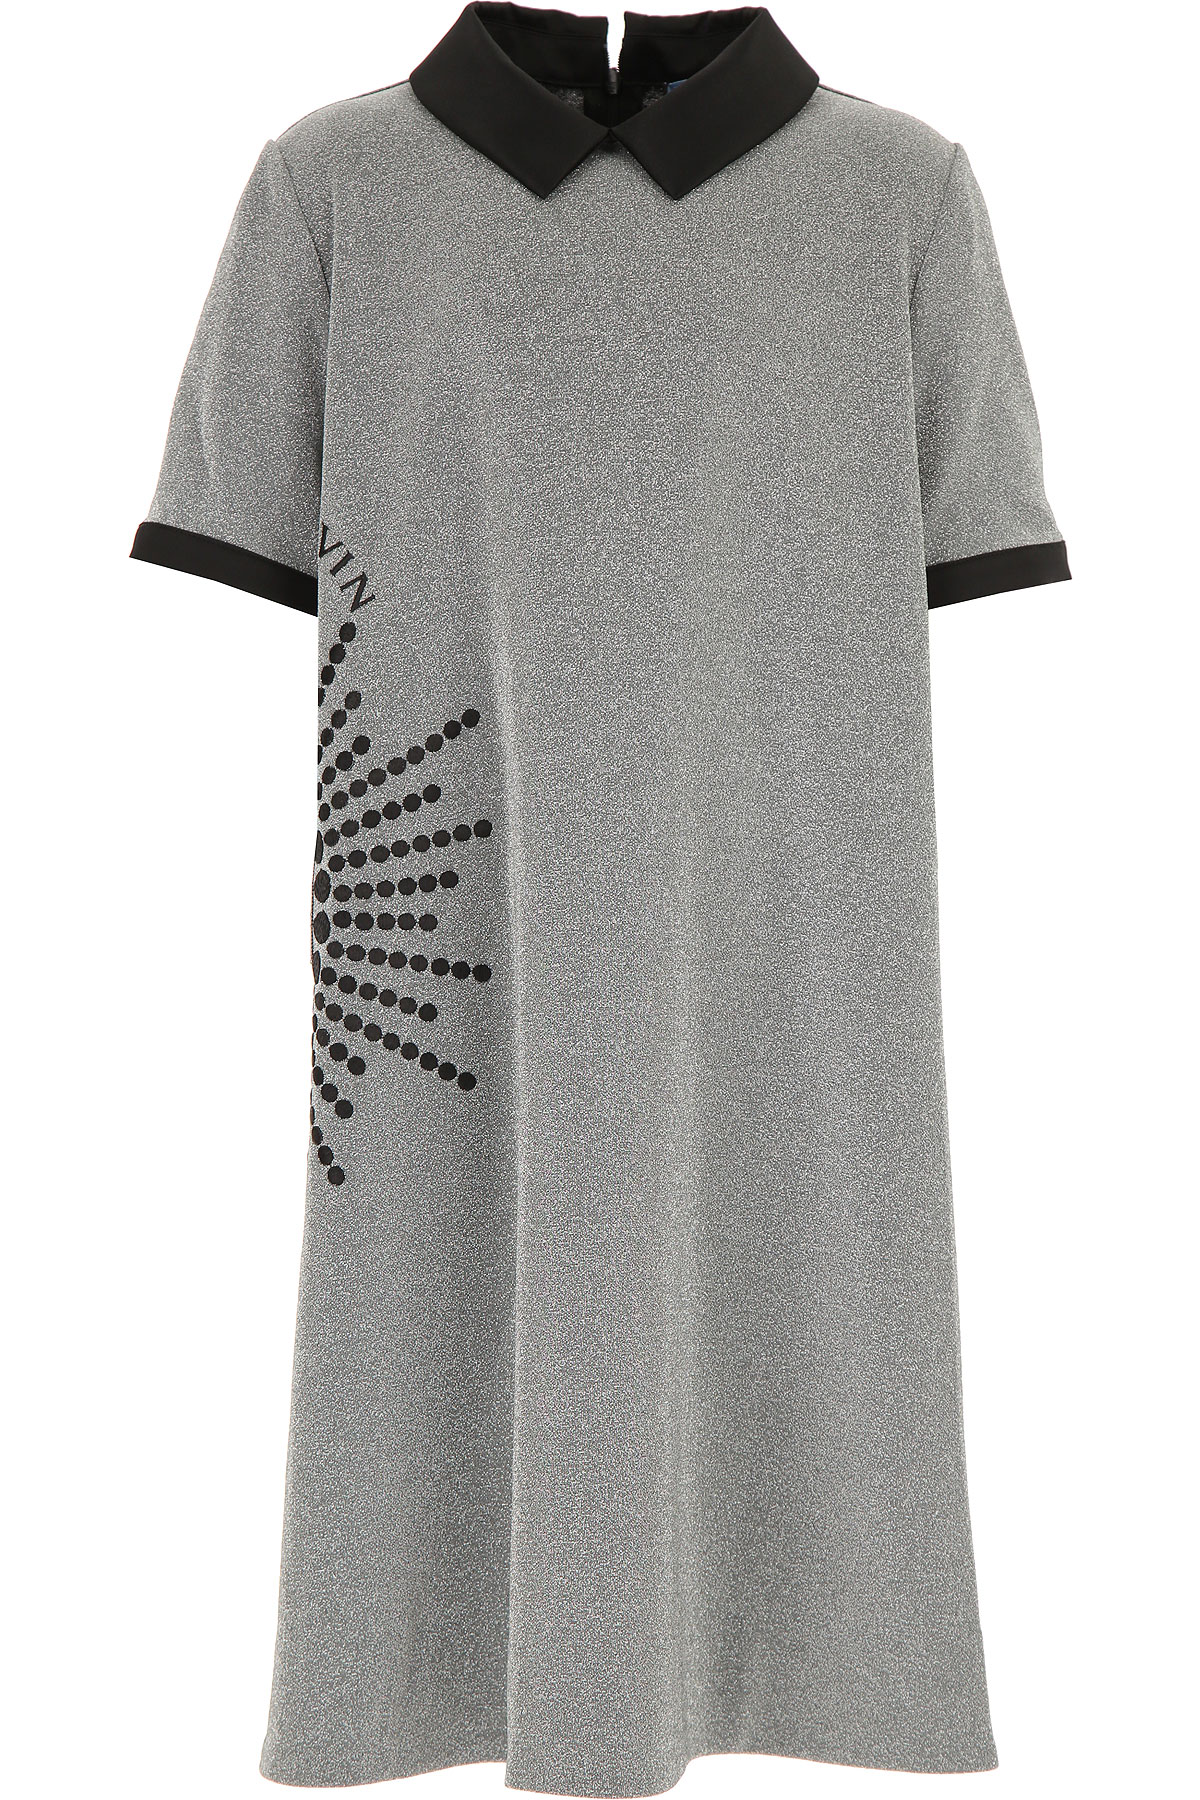 Lanvin Girls Dress On Sale, Silver, viscosa, 2019, 10Y 12Y